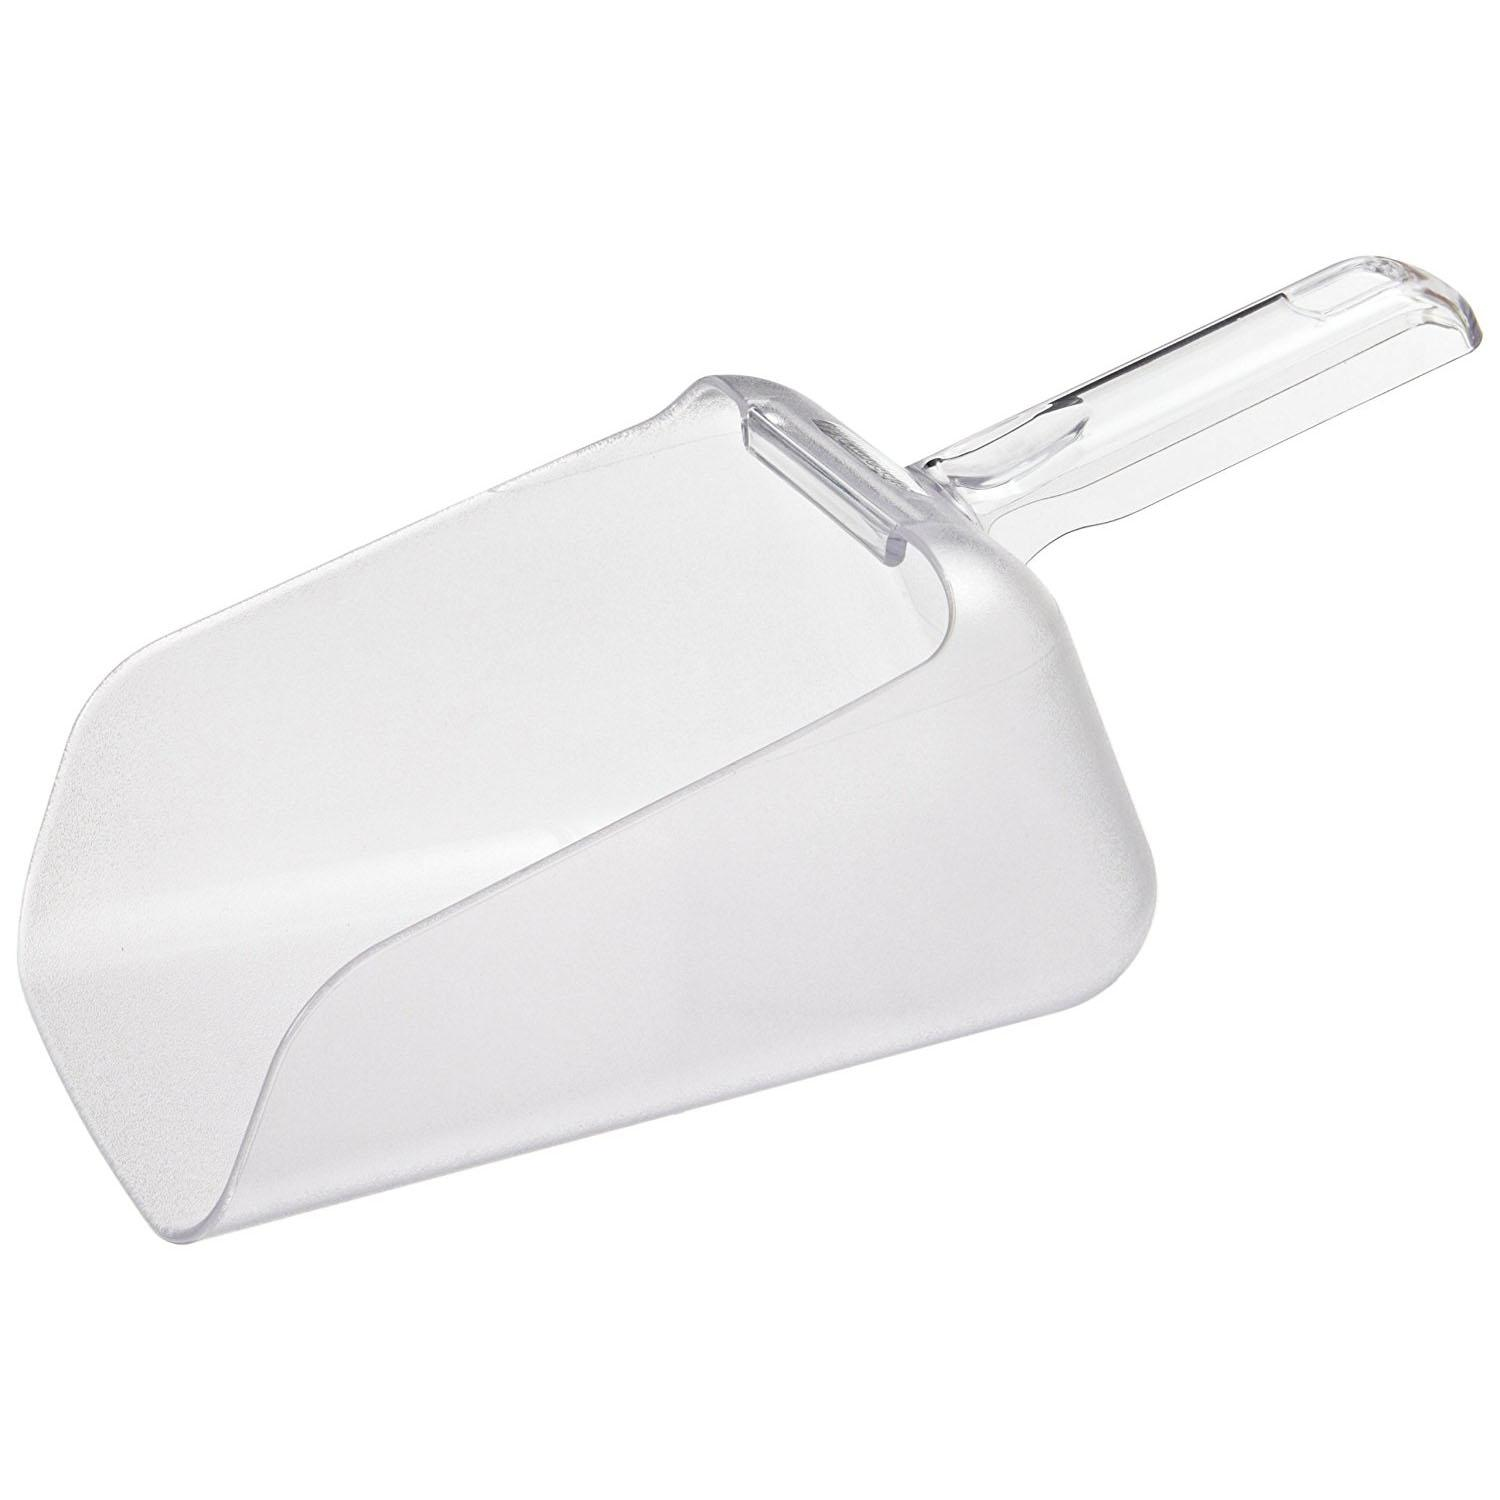 Rubbermaid 64oz Bouncer Contour Scoop for $2.33